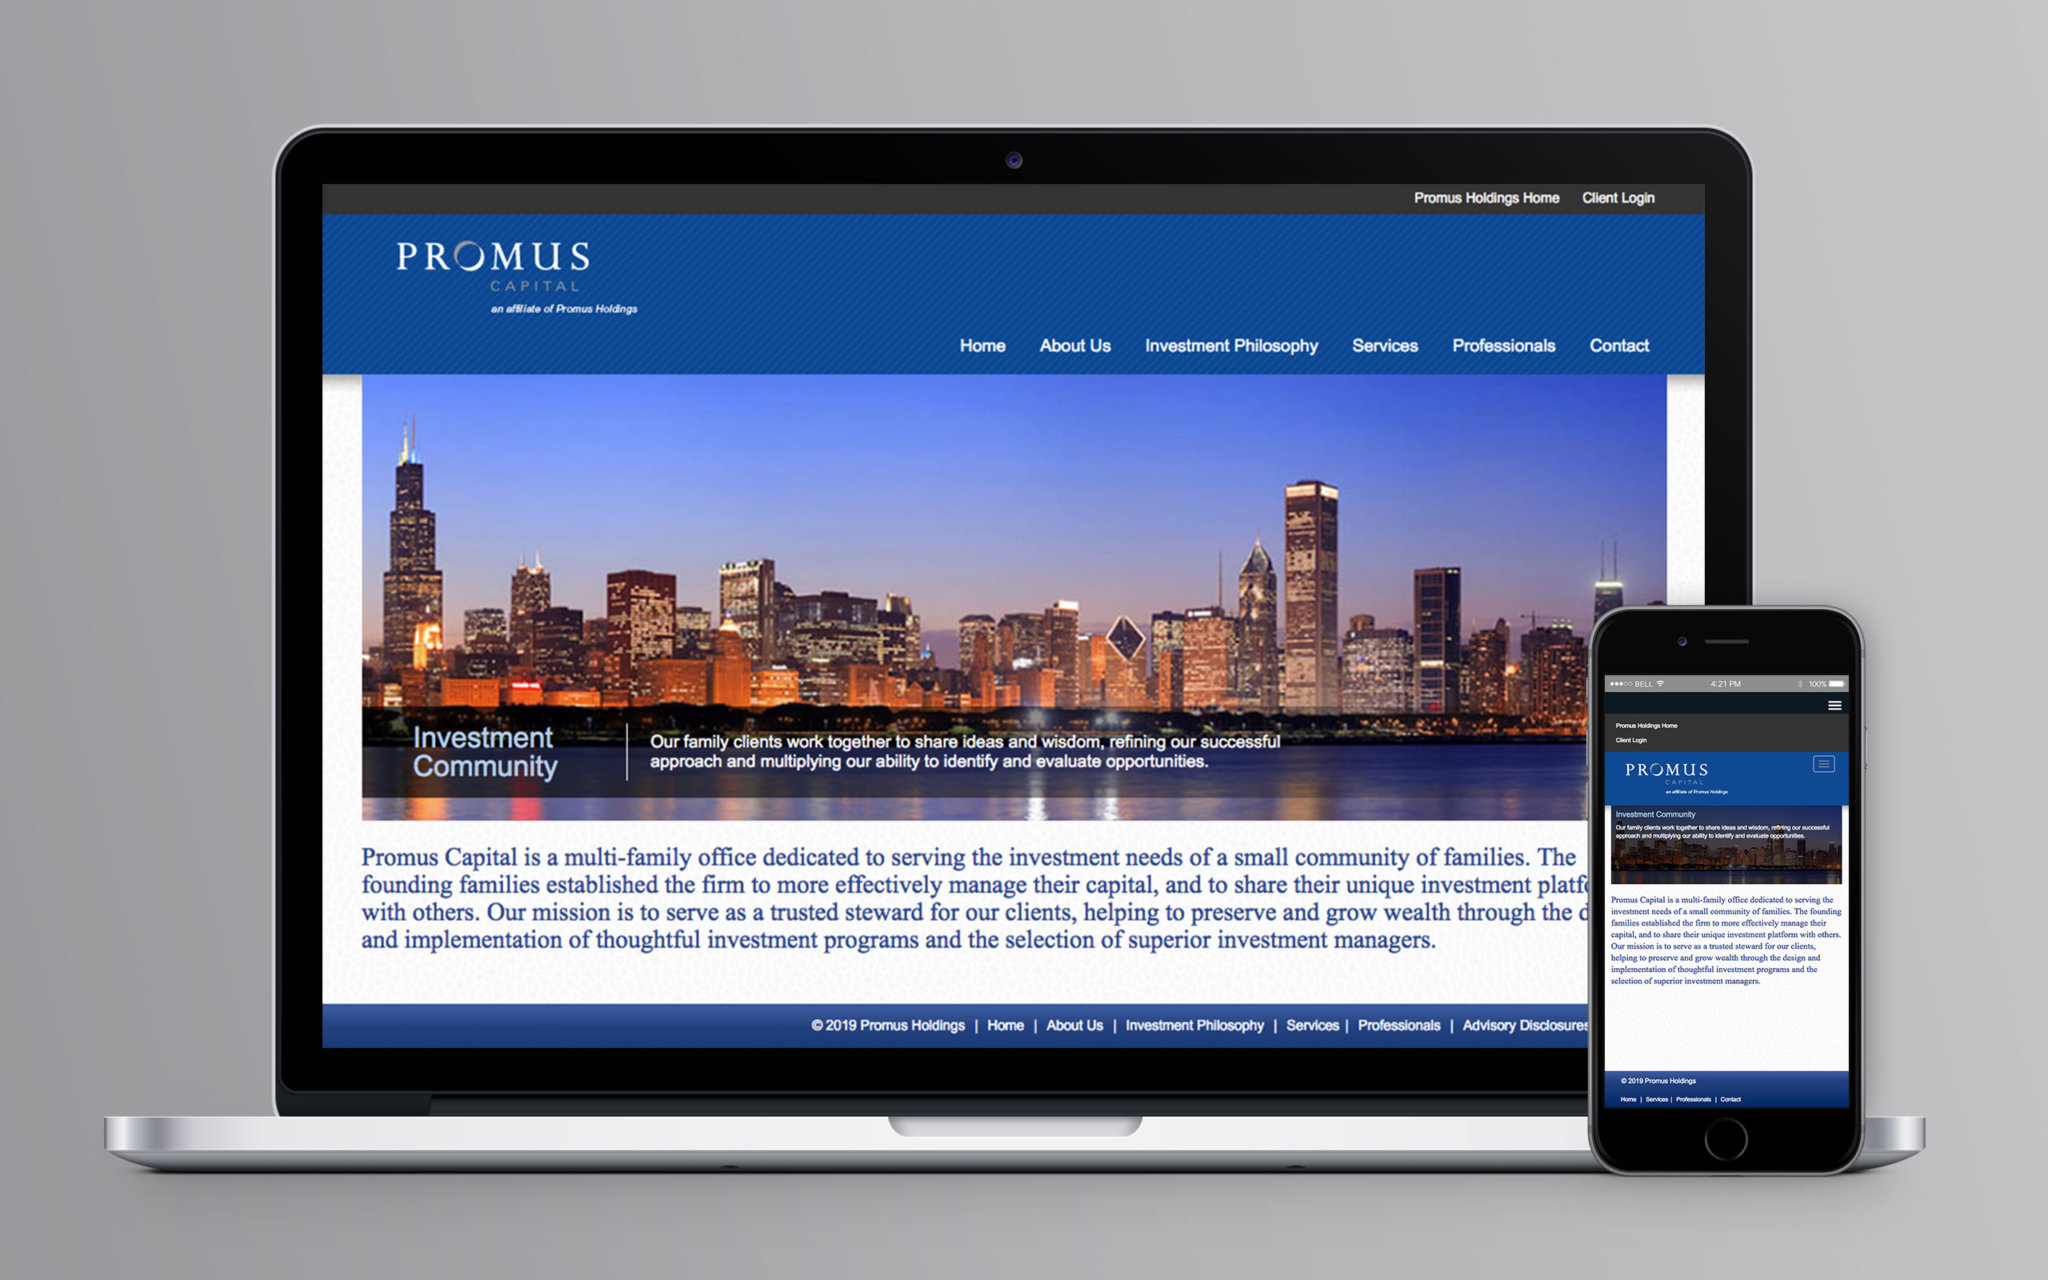 Promus Capital Website Home